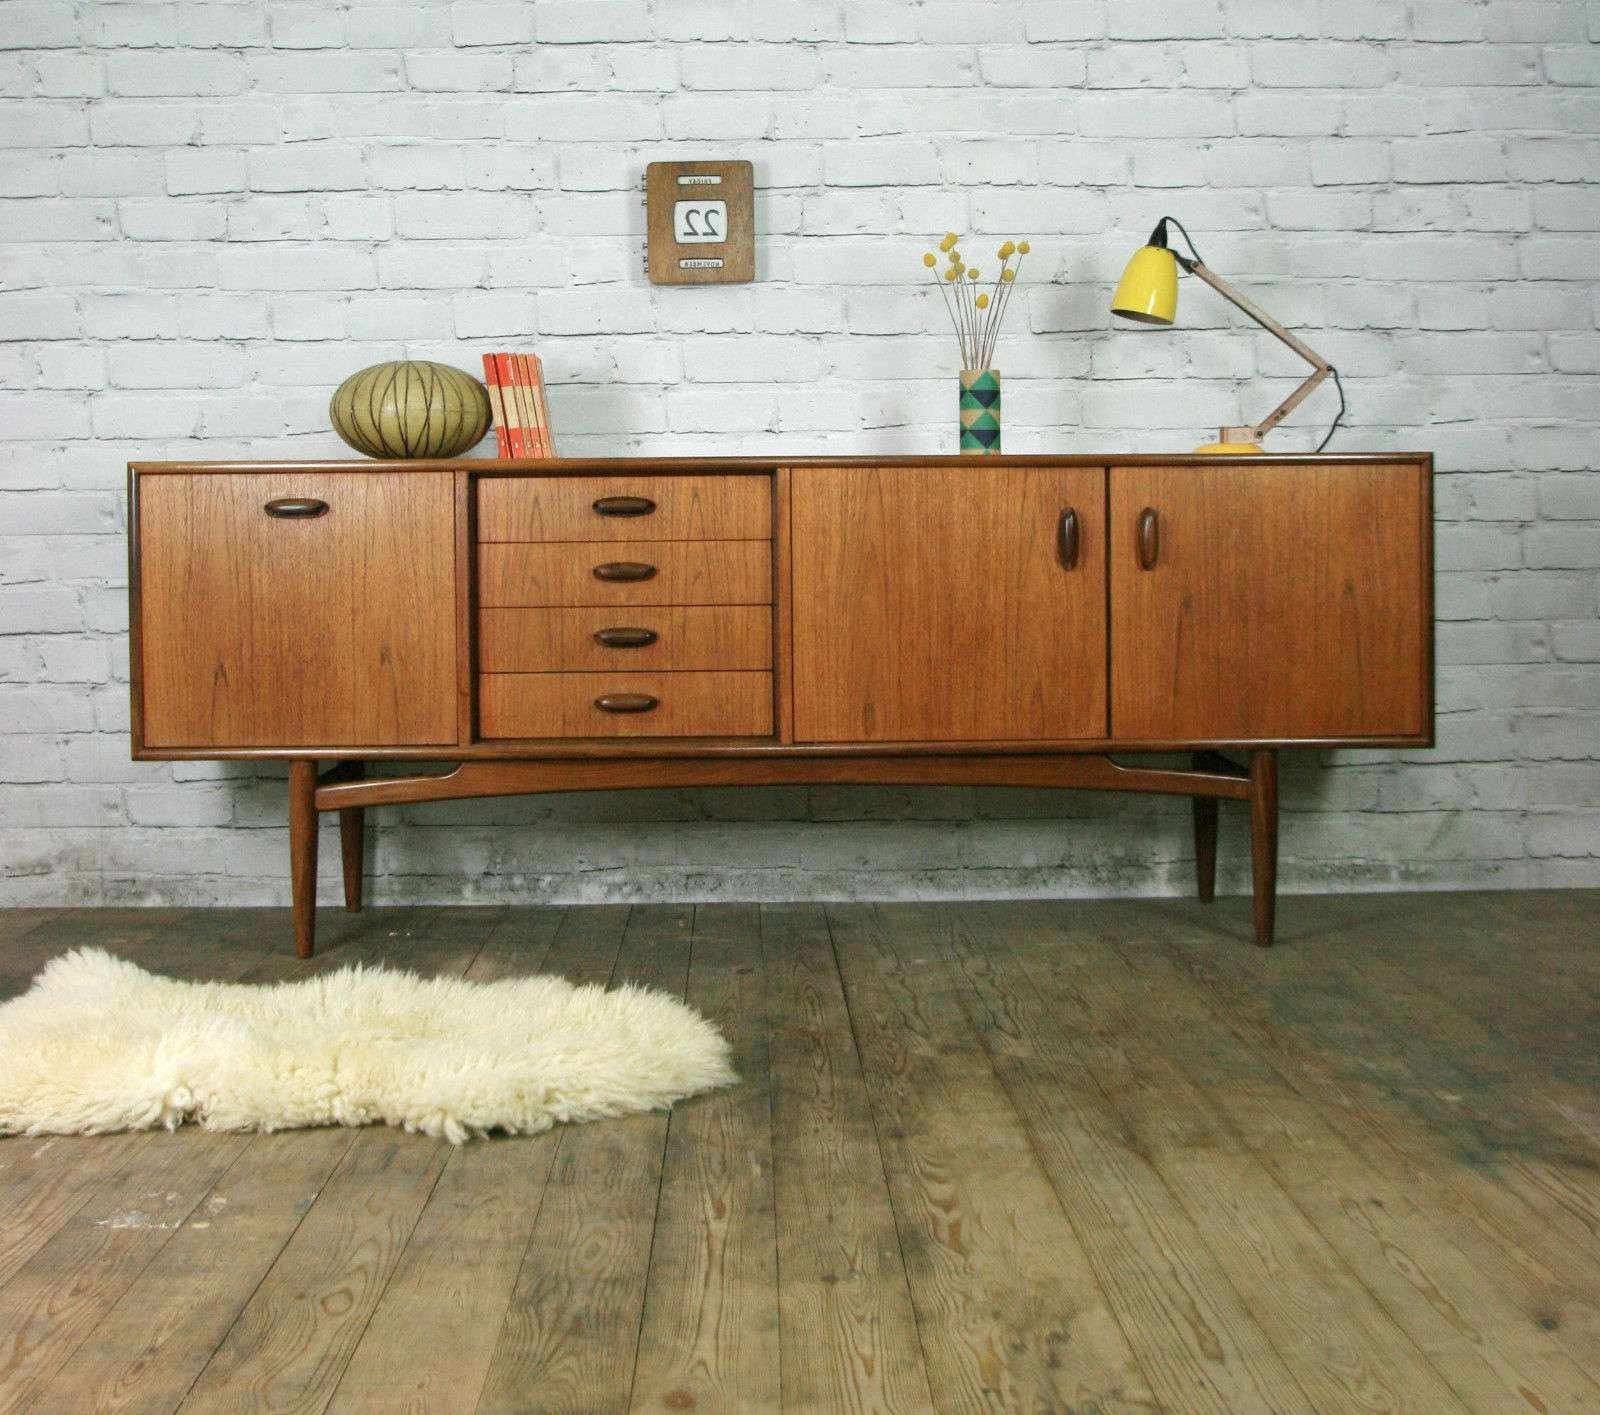 Retro Scandinavian Chair, Vintage Sideboards And Buffets Ideas With Retro Sideboards (View 8 of 20)